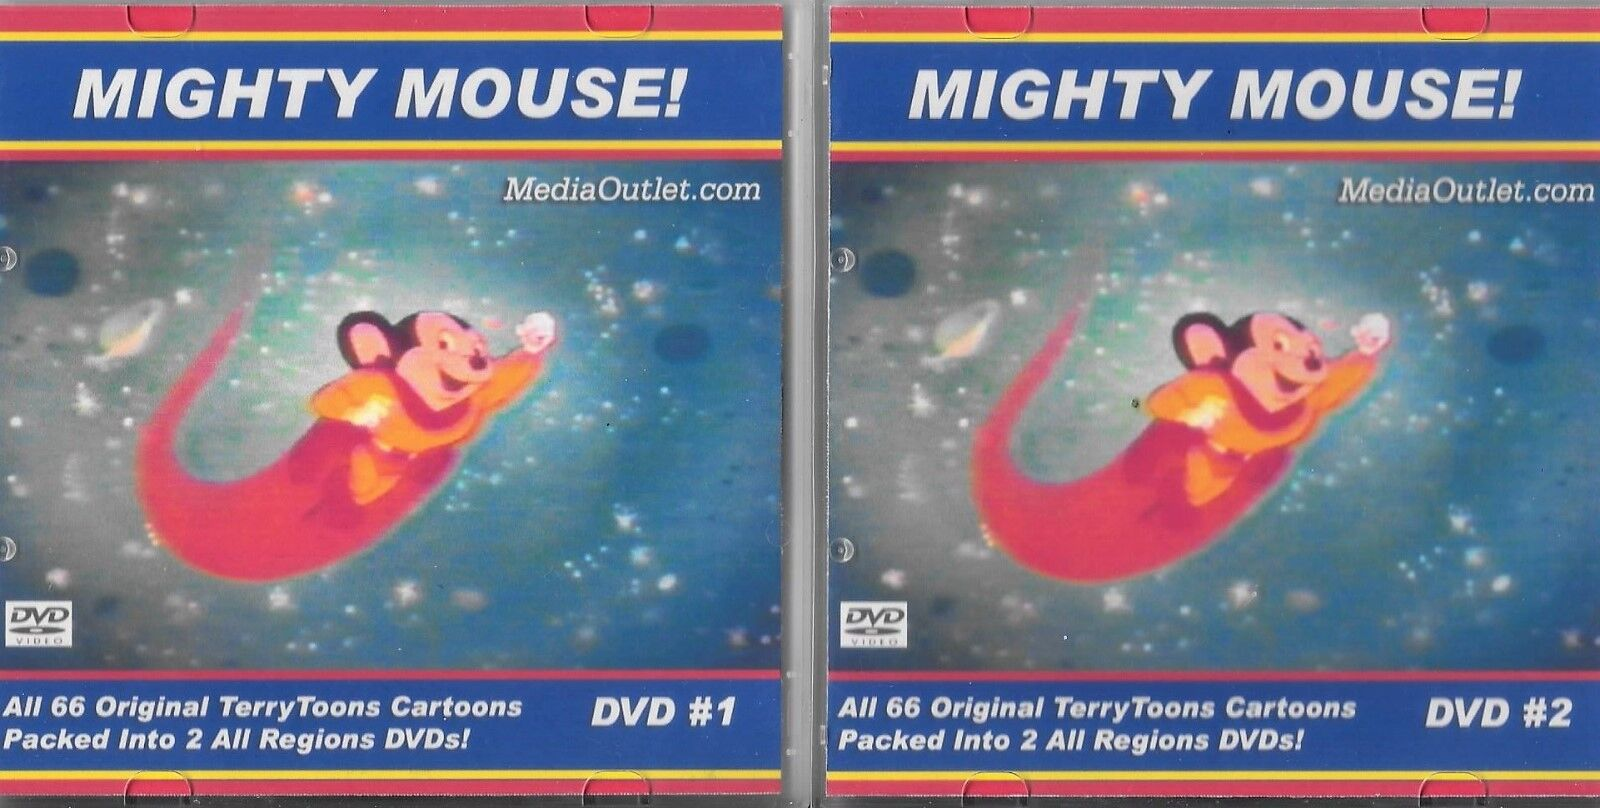 Mighty Mouse All 66 Original Terry Toons Cartoon DVDs - $26.99